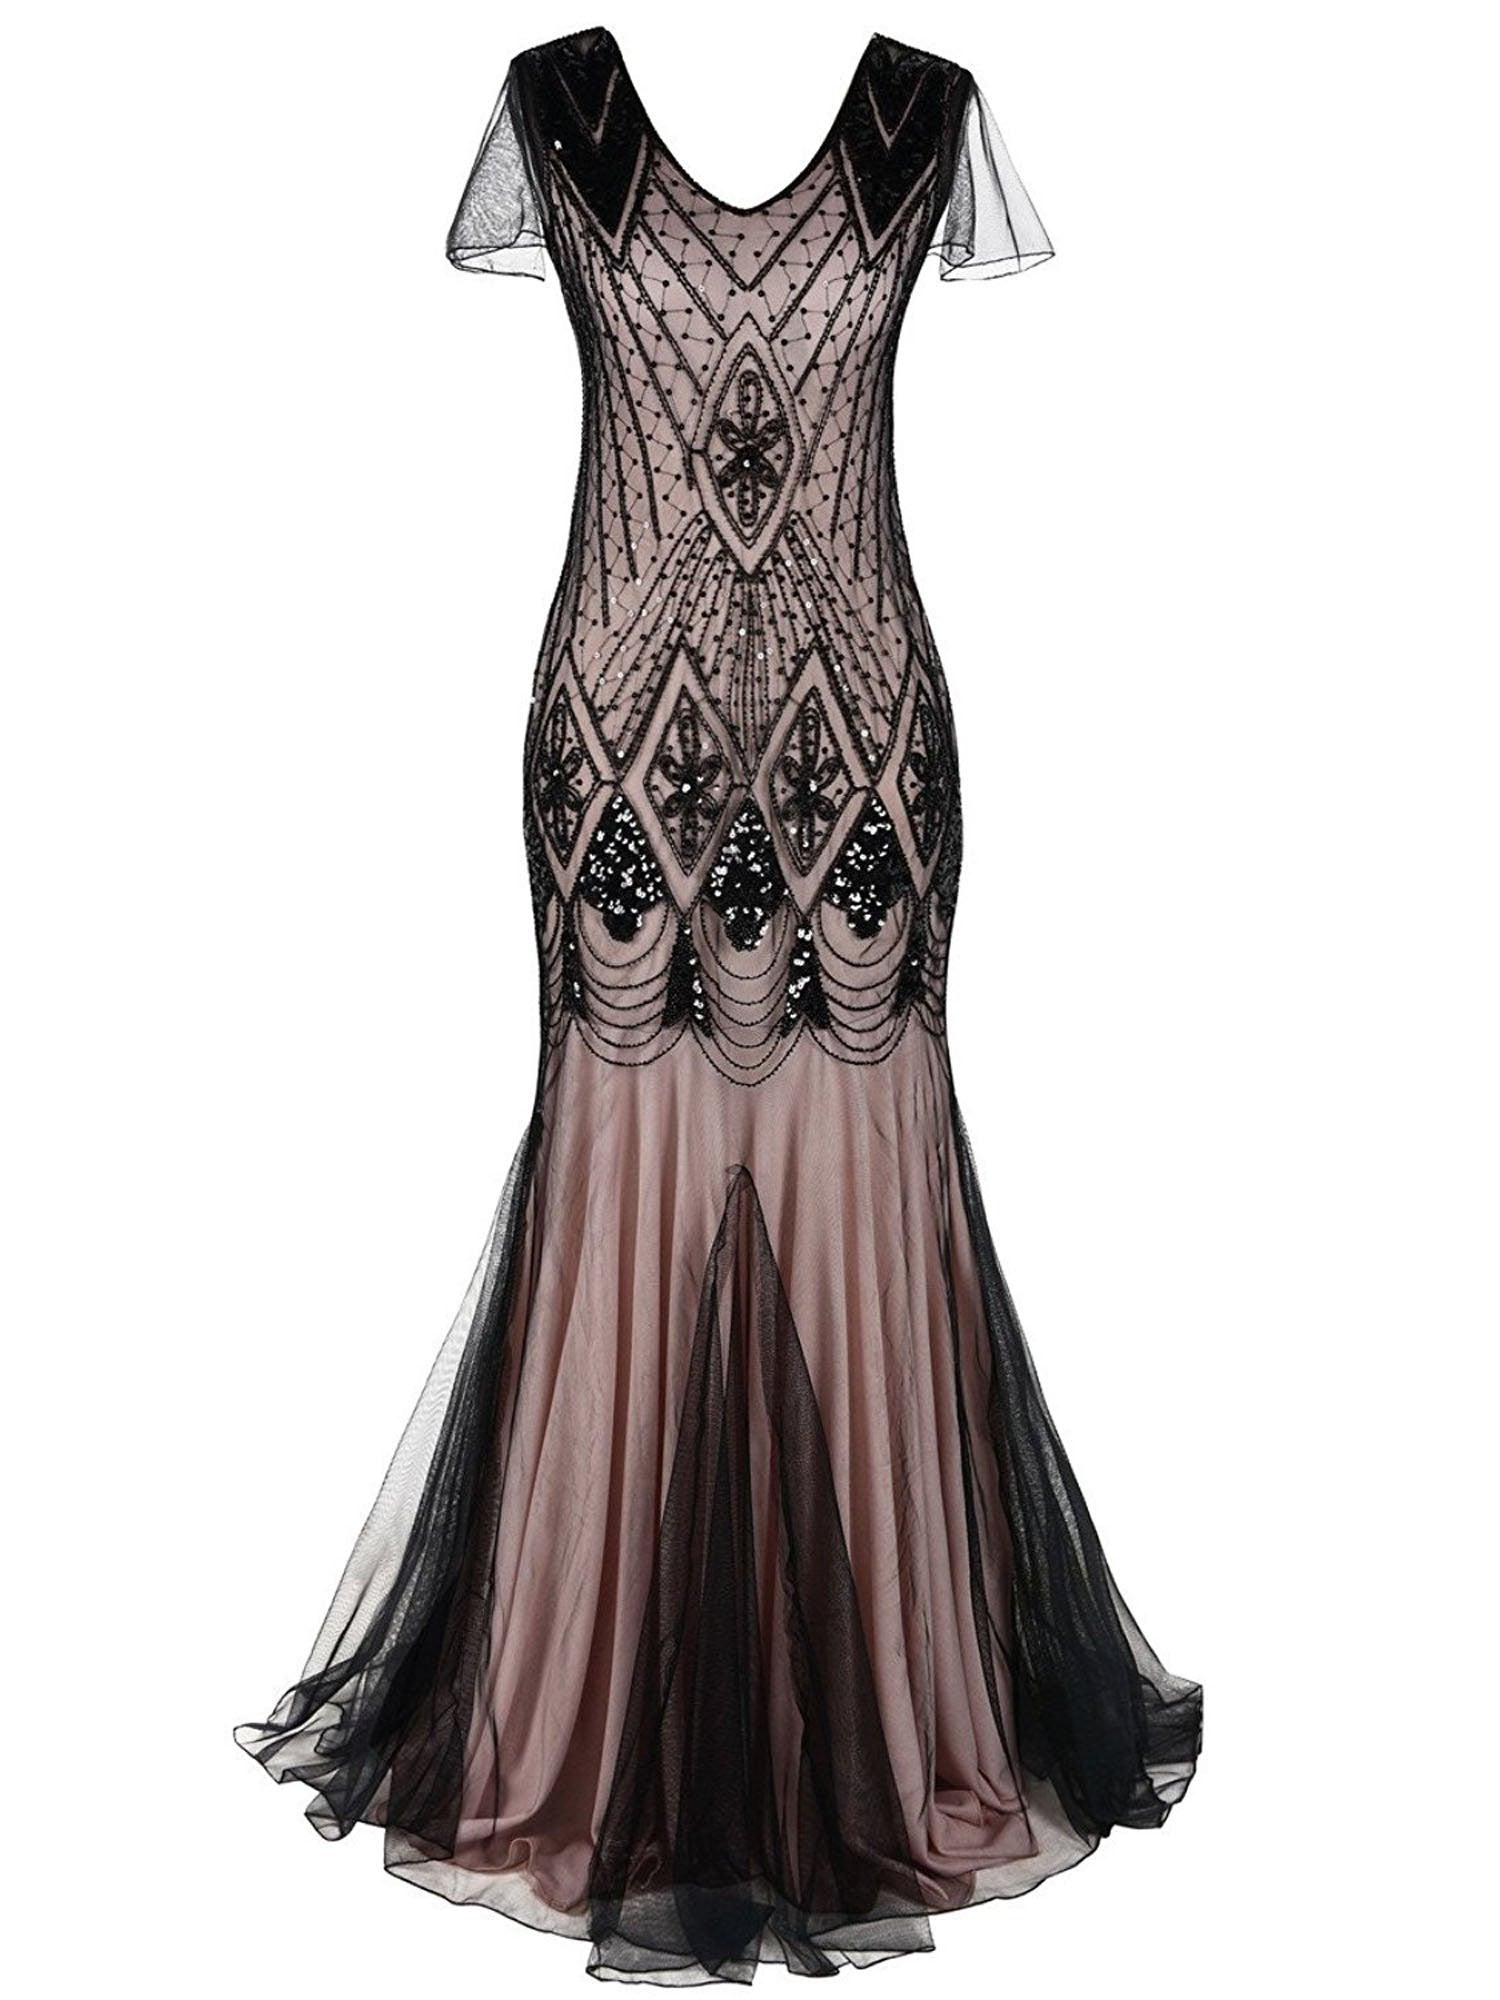 17a60f1a4 Pink 1920s Cap Sleeve Sequin Evening Dress - Retro Stage - Chic ...